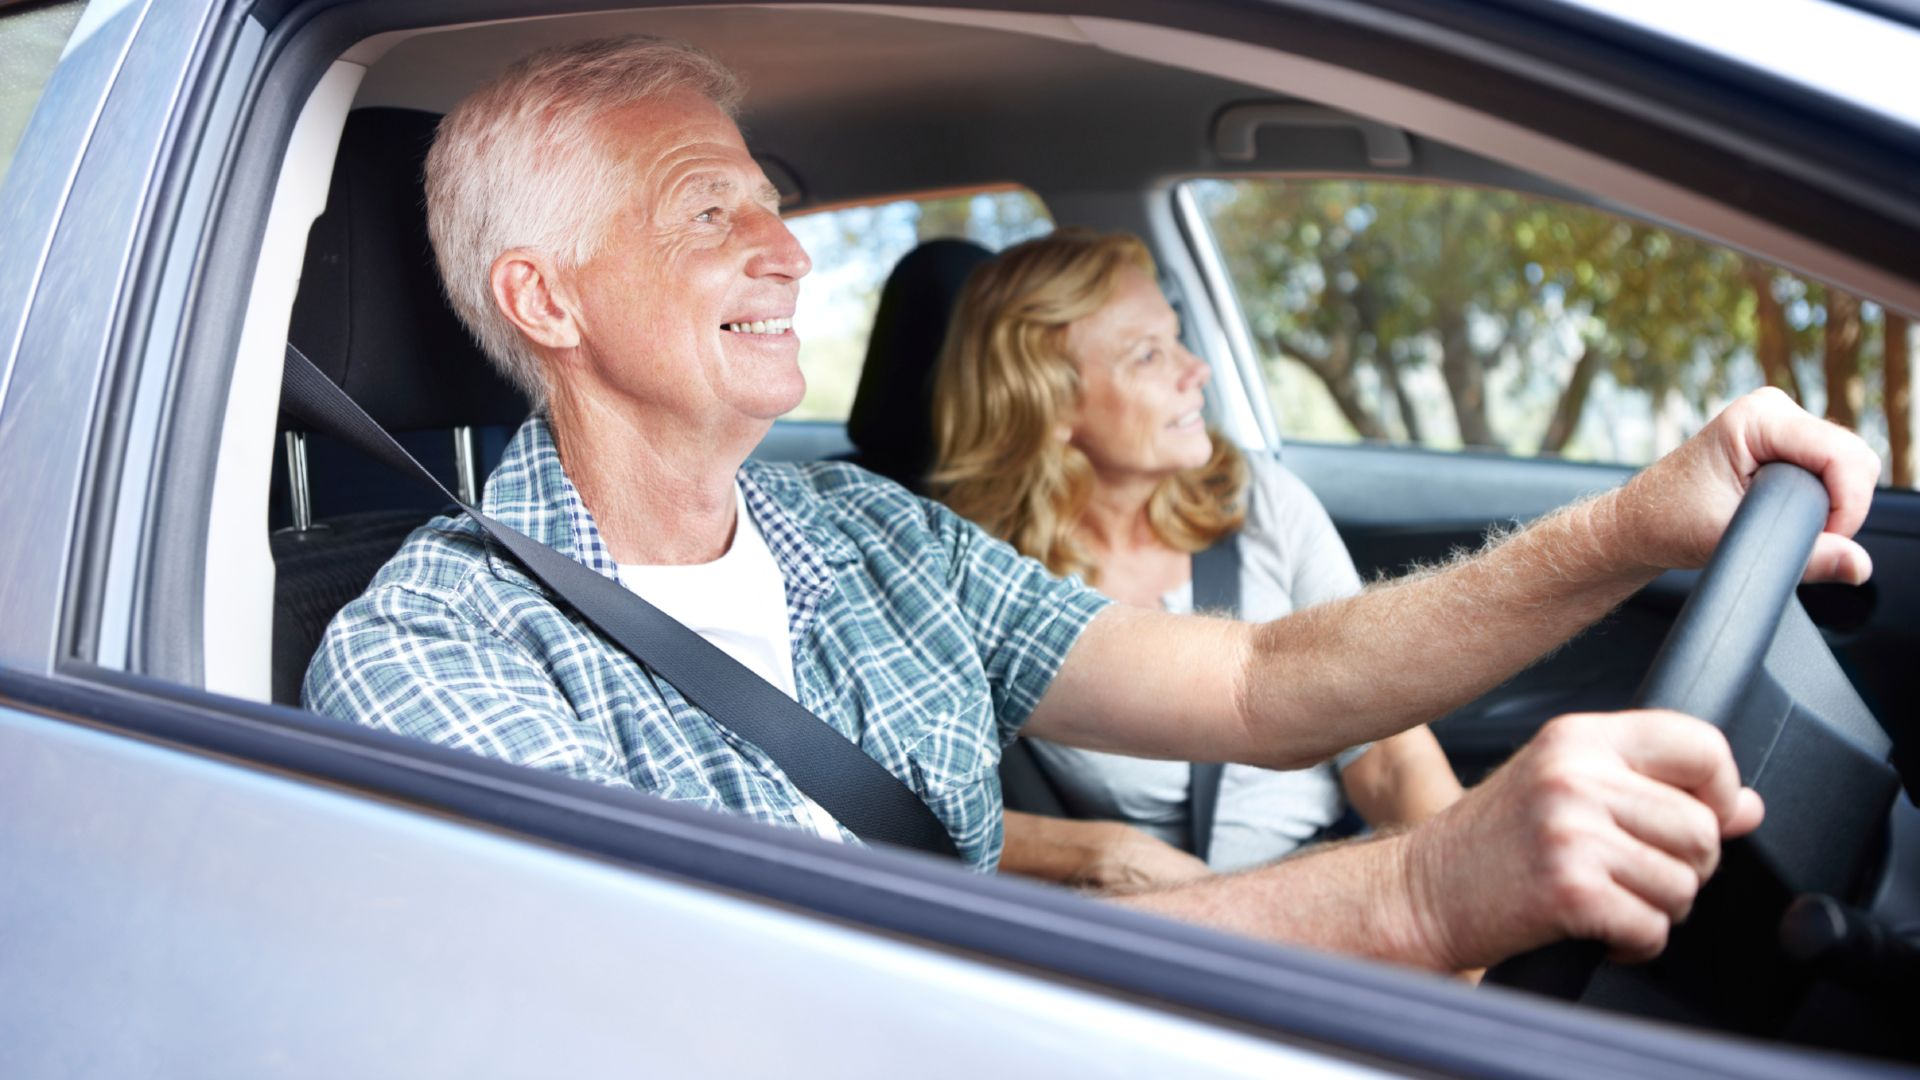 Older drivers shouldn't be demonised